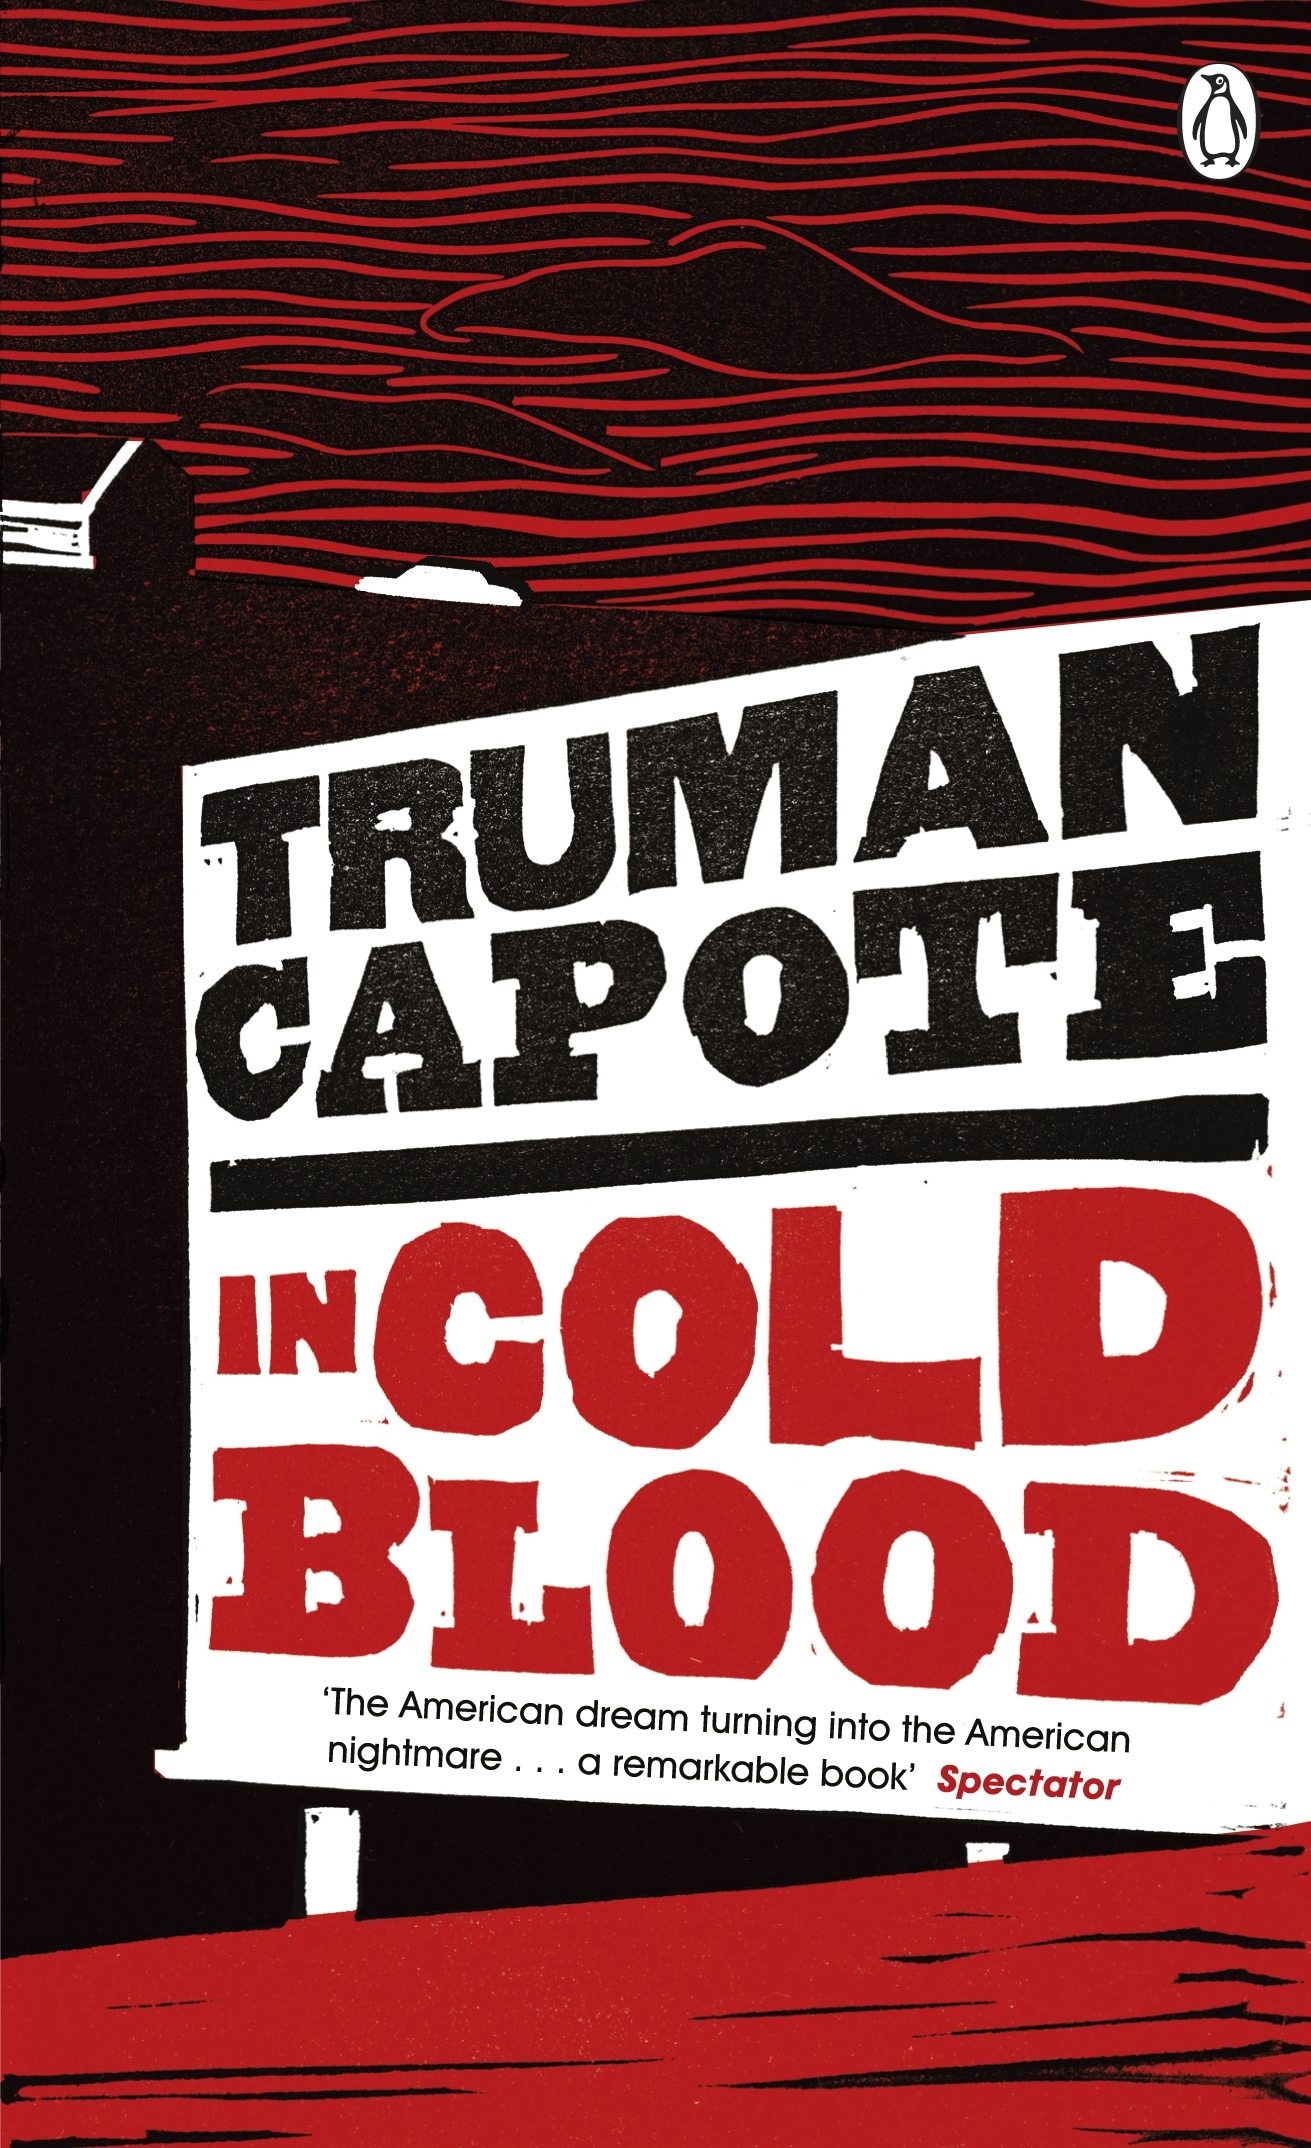 a literary analysis of cold blood by truman capote How to write literary analysis  truman capote (1924-1984) was one  in cold blood was that book in 1959, capote noticed a small newspaper item describing the.